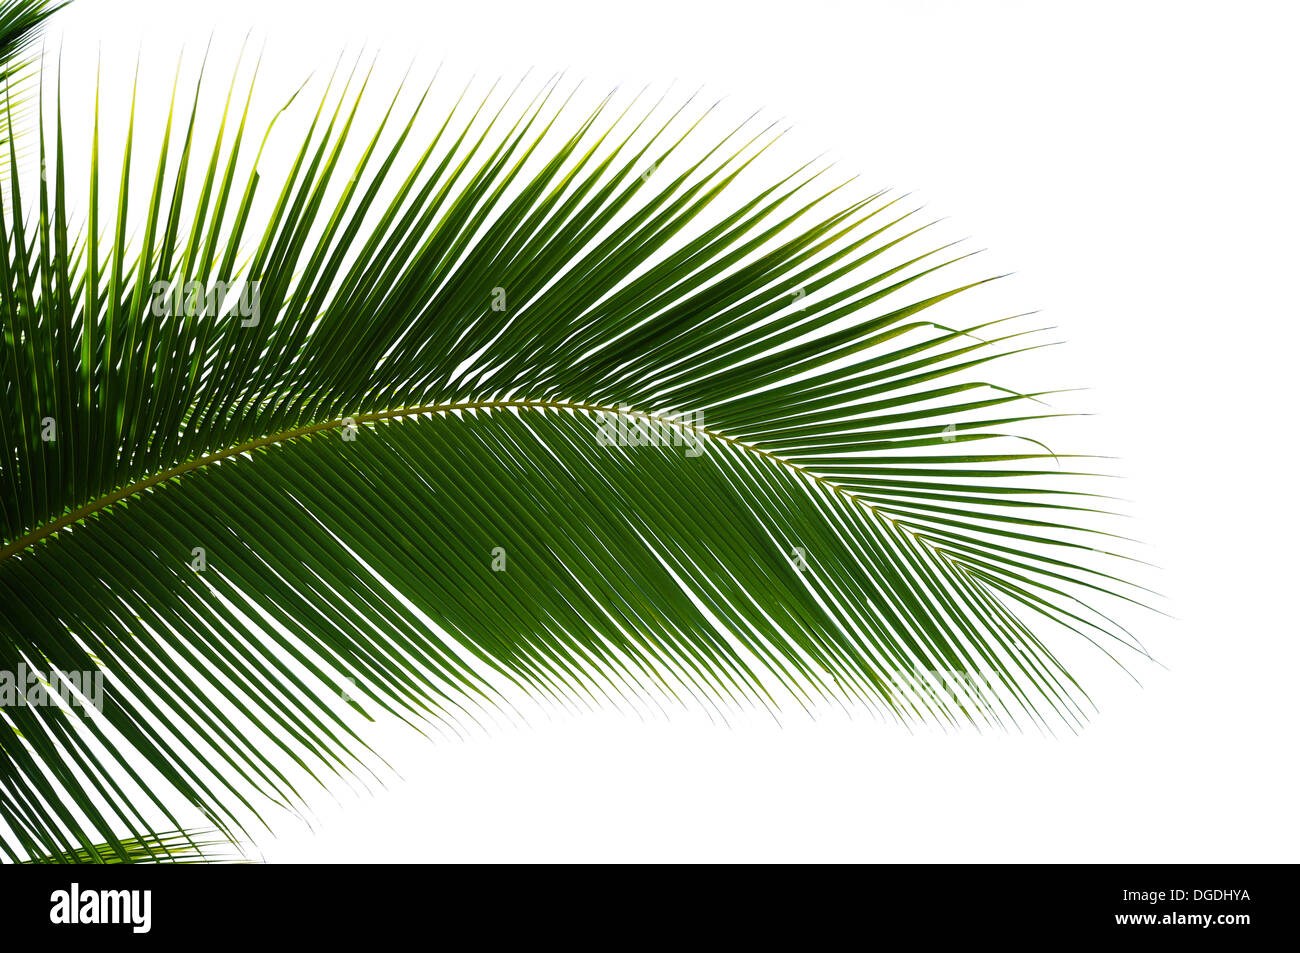 Leaf of coconut palm tree isolated on white background - Stock Image